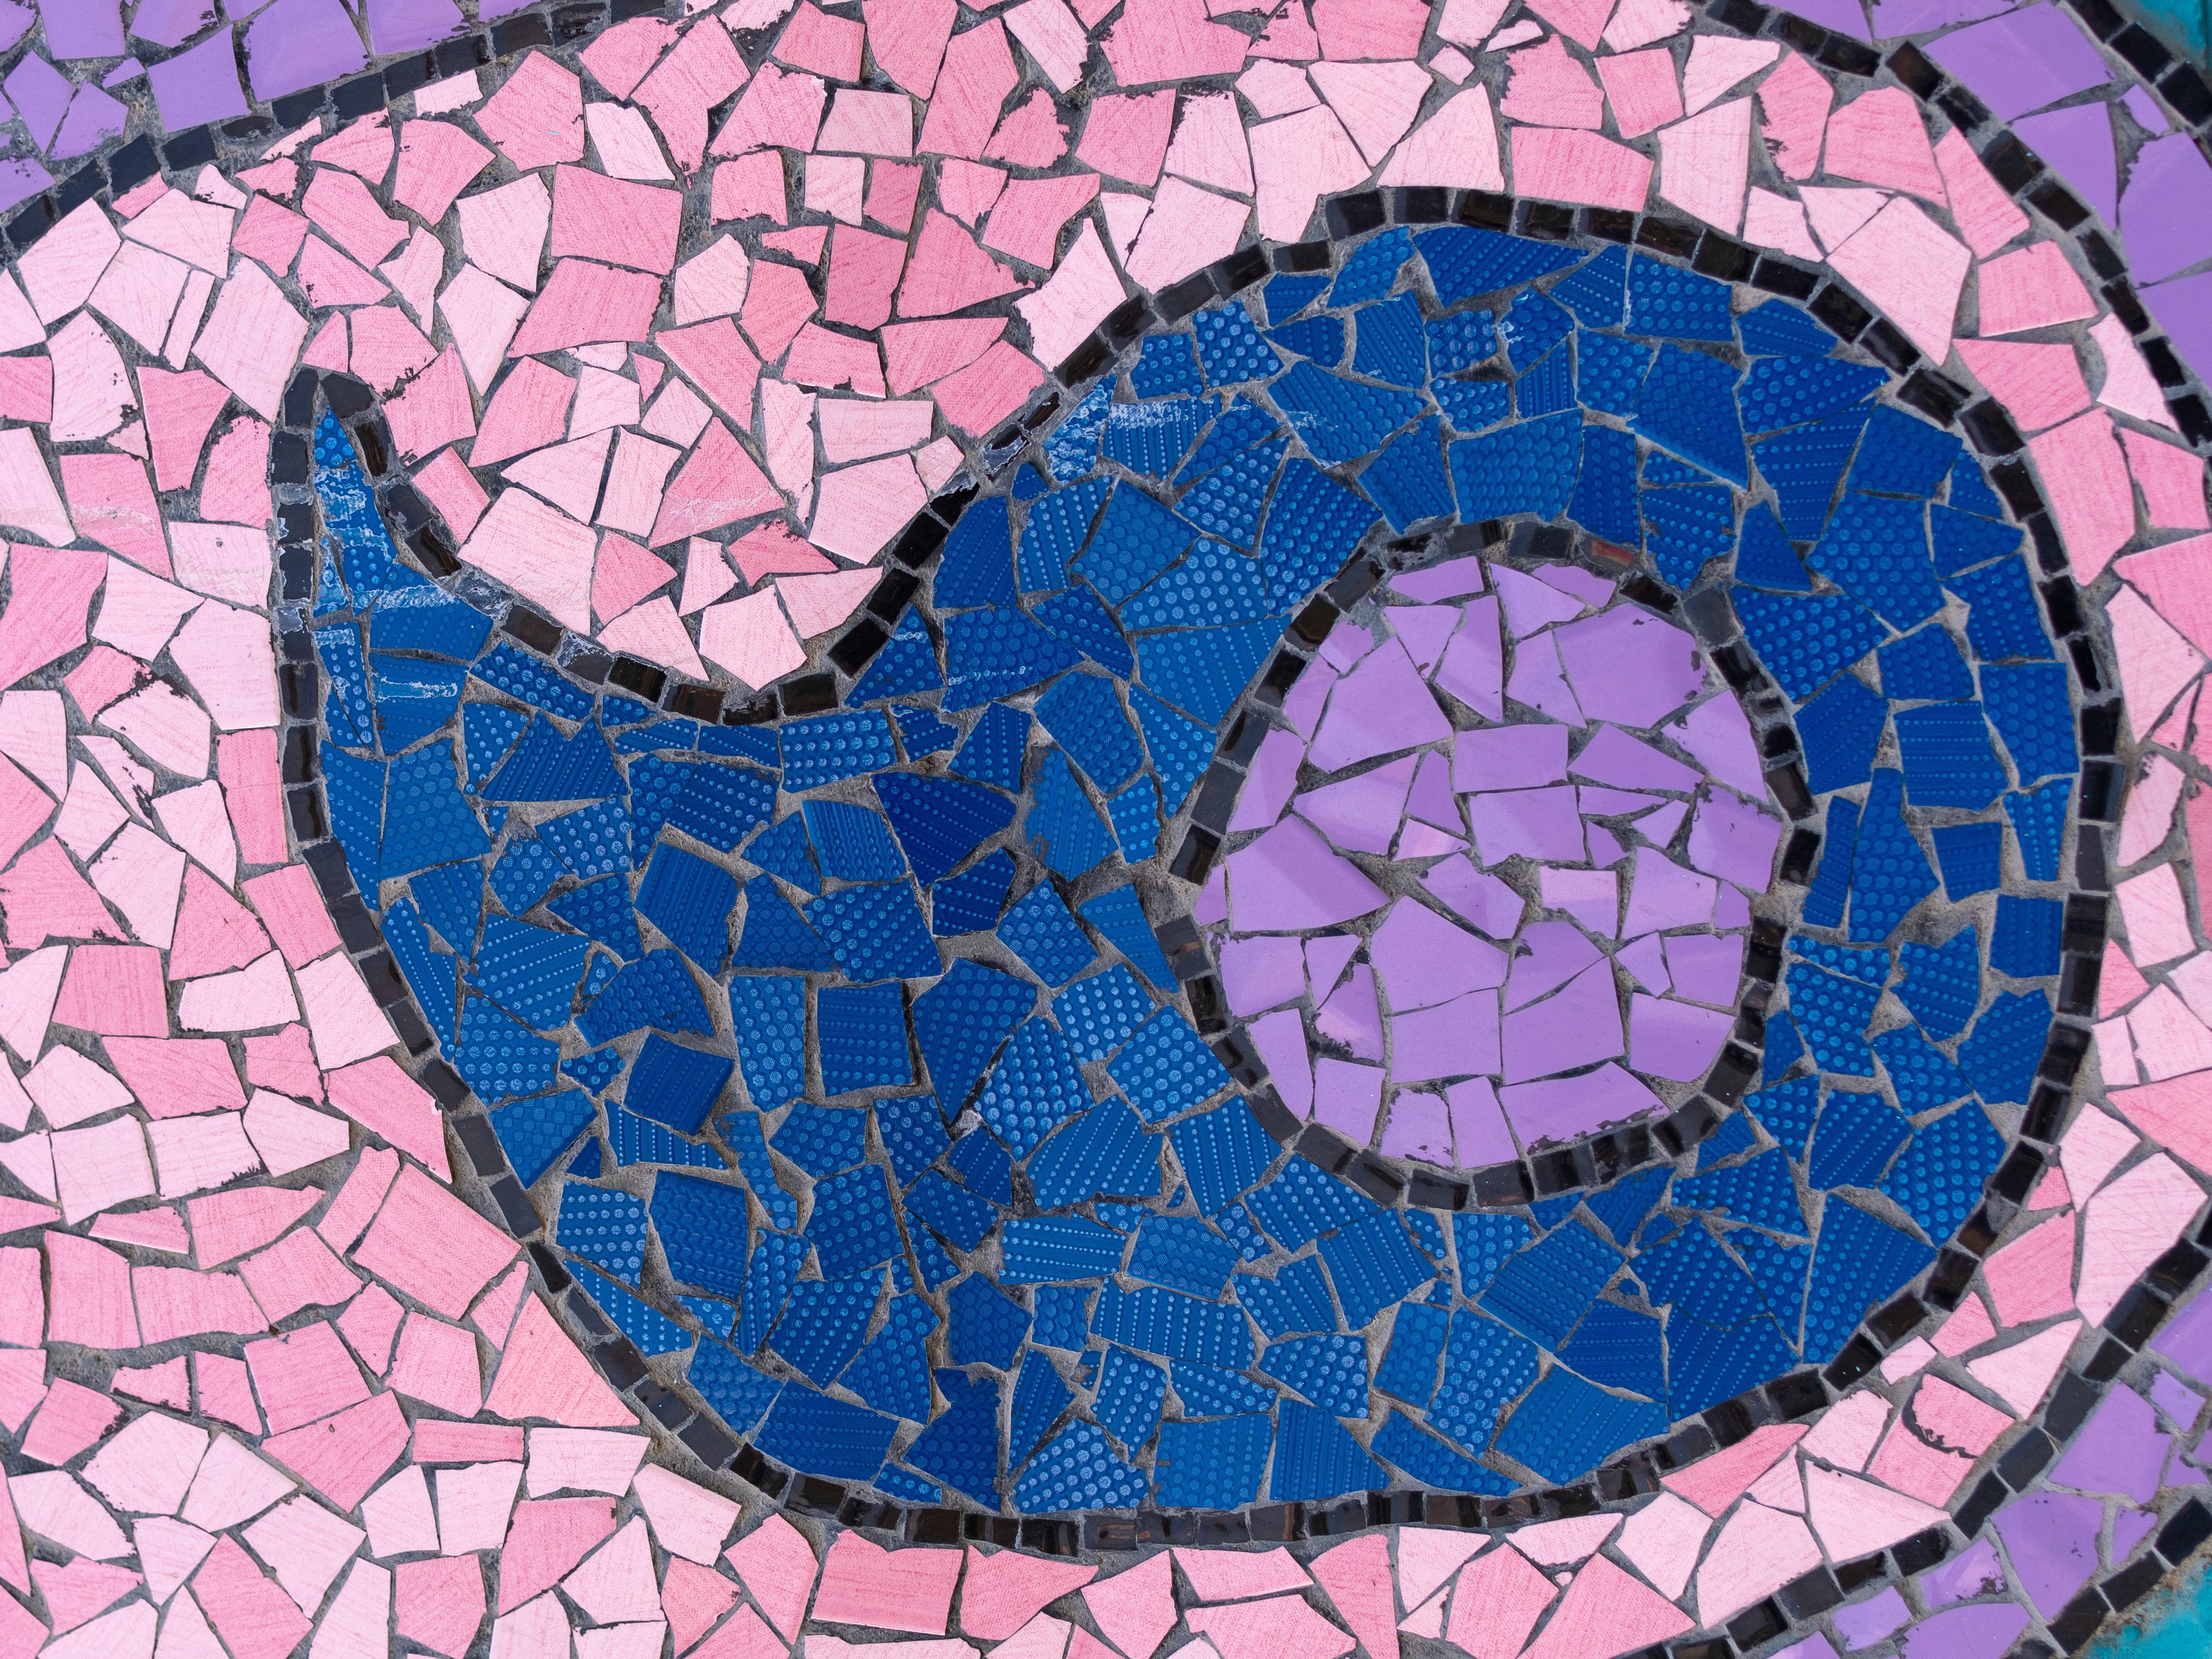 A Breakdown on Caring for Mosaic Surfaces